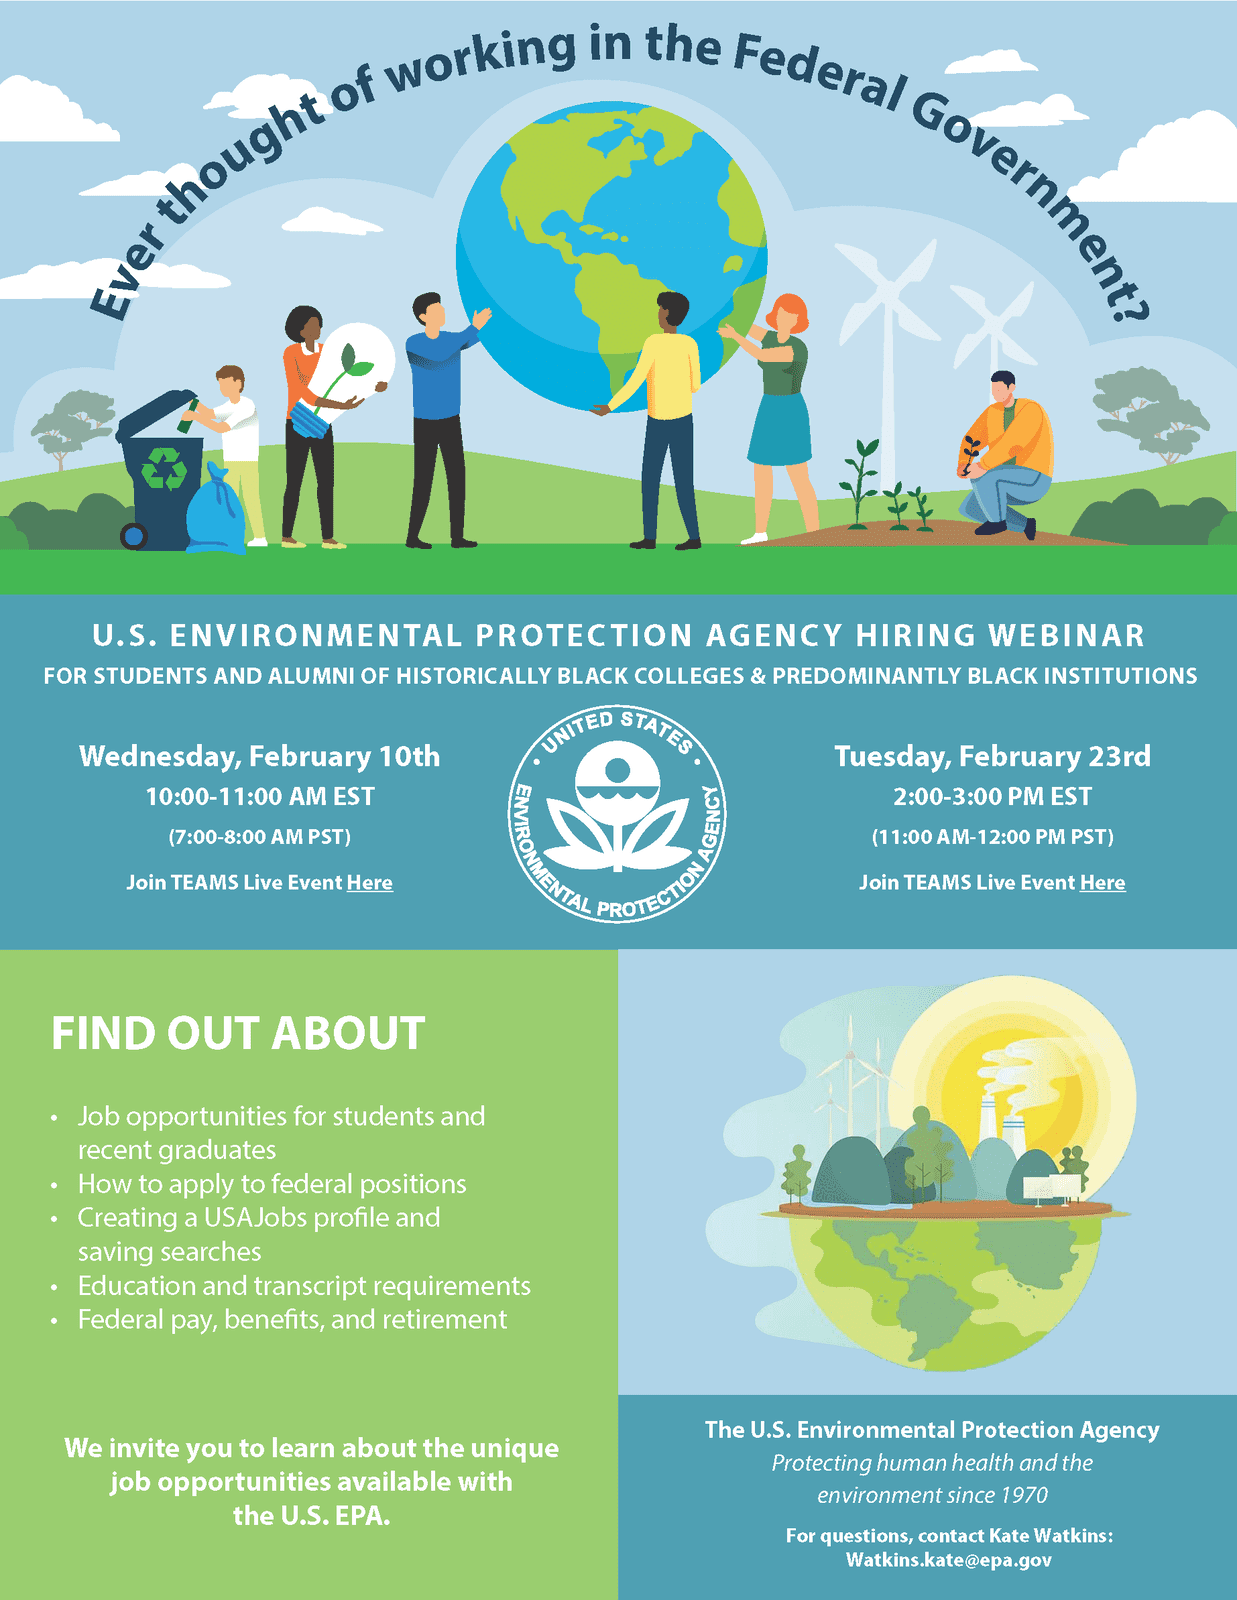 Announcement: U.S. Environmental Protection Agency Hiring Webinar for students and alumni of HBCUs and PBIs